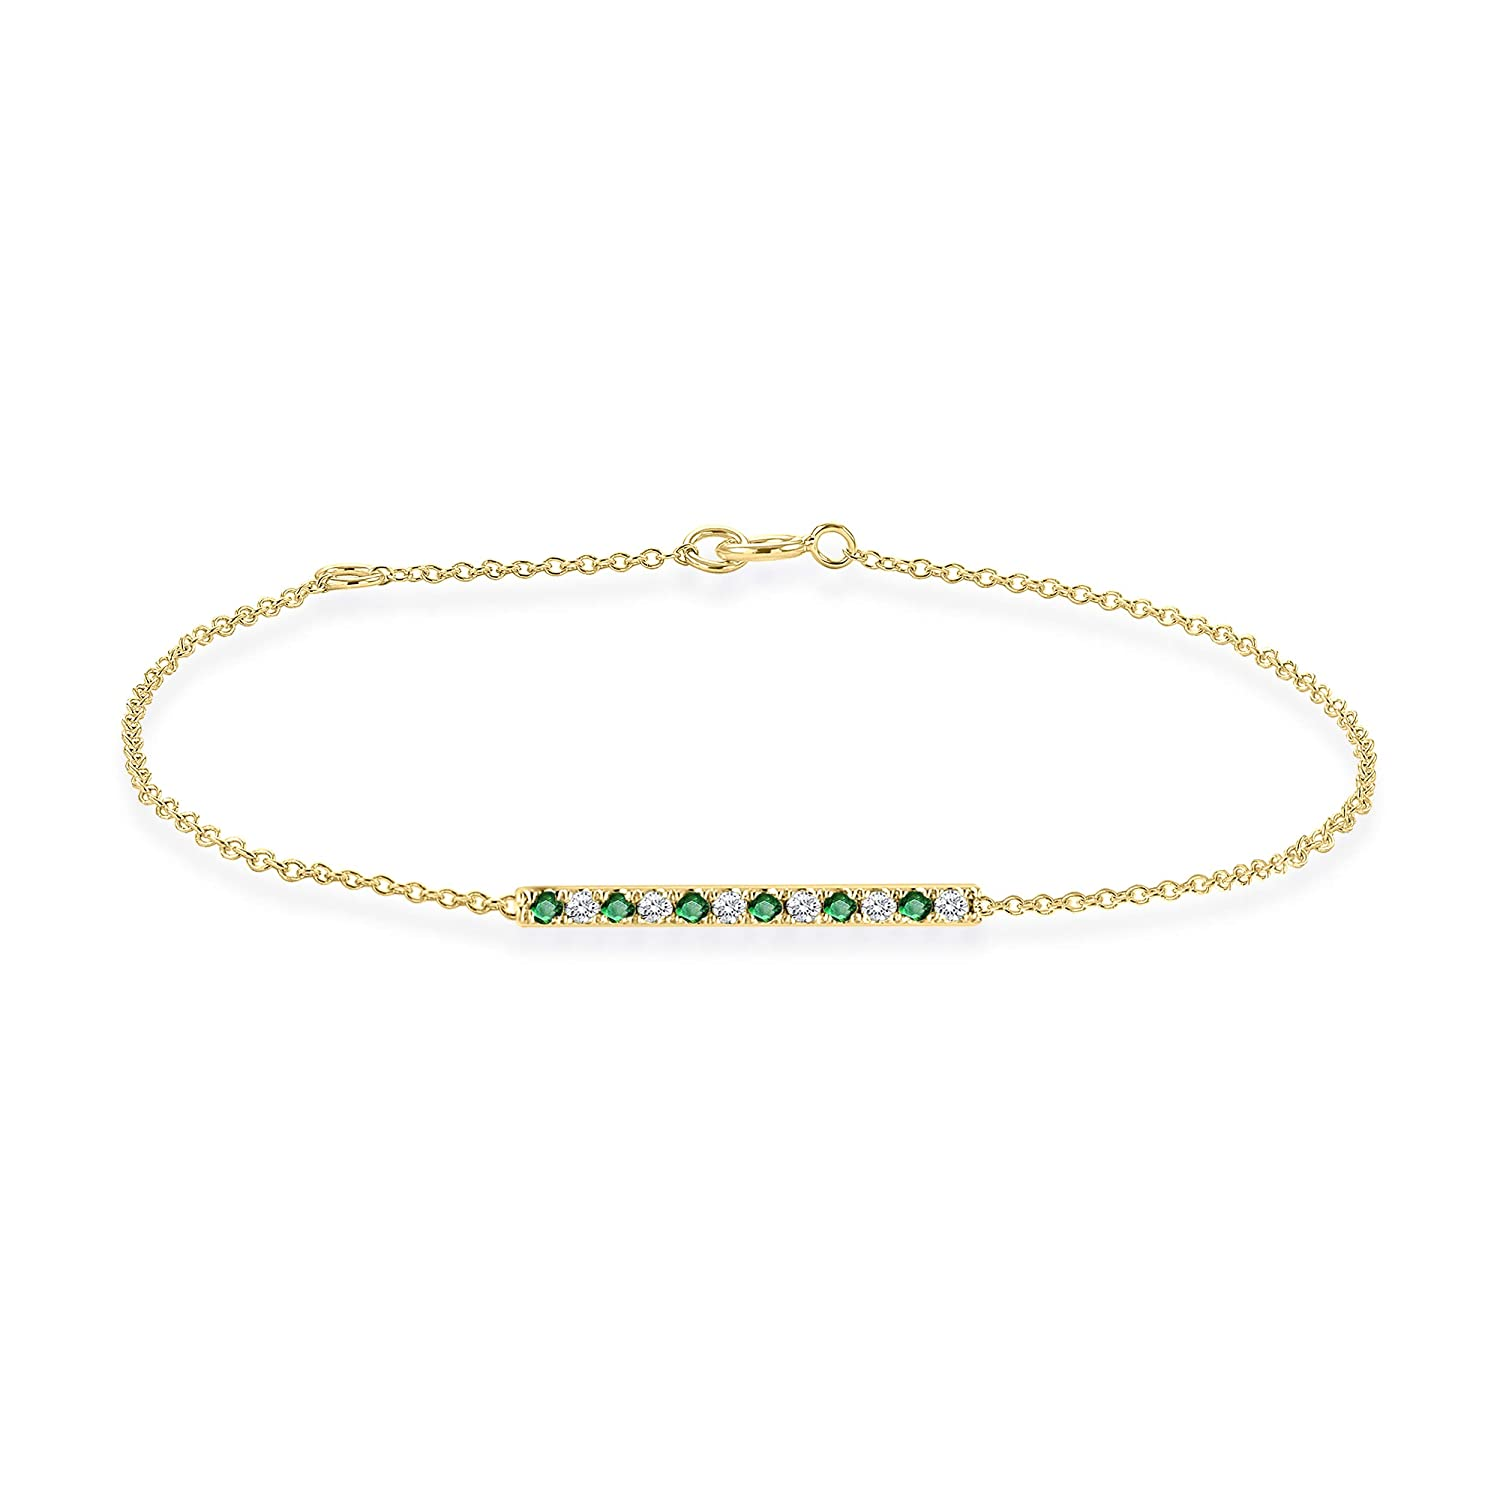 Rare Earth Diamond Jewellery Round Cut Emerald with CZ Horizontal Bar Bracelet in 14K Gold Over Sterling Silver BR000537B-ALT-WH-GE-925-Y-6